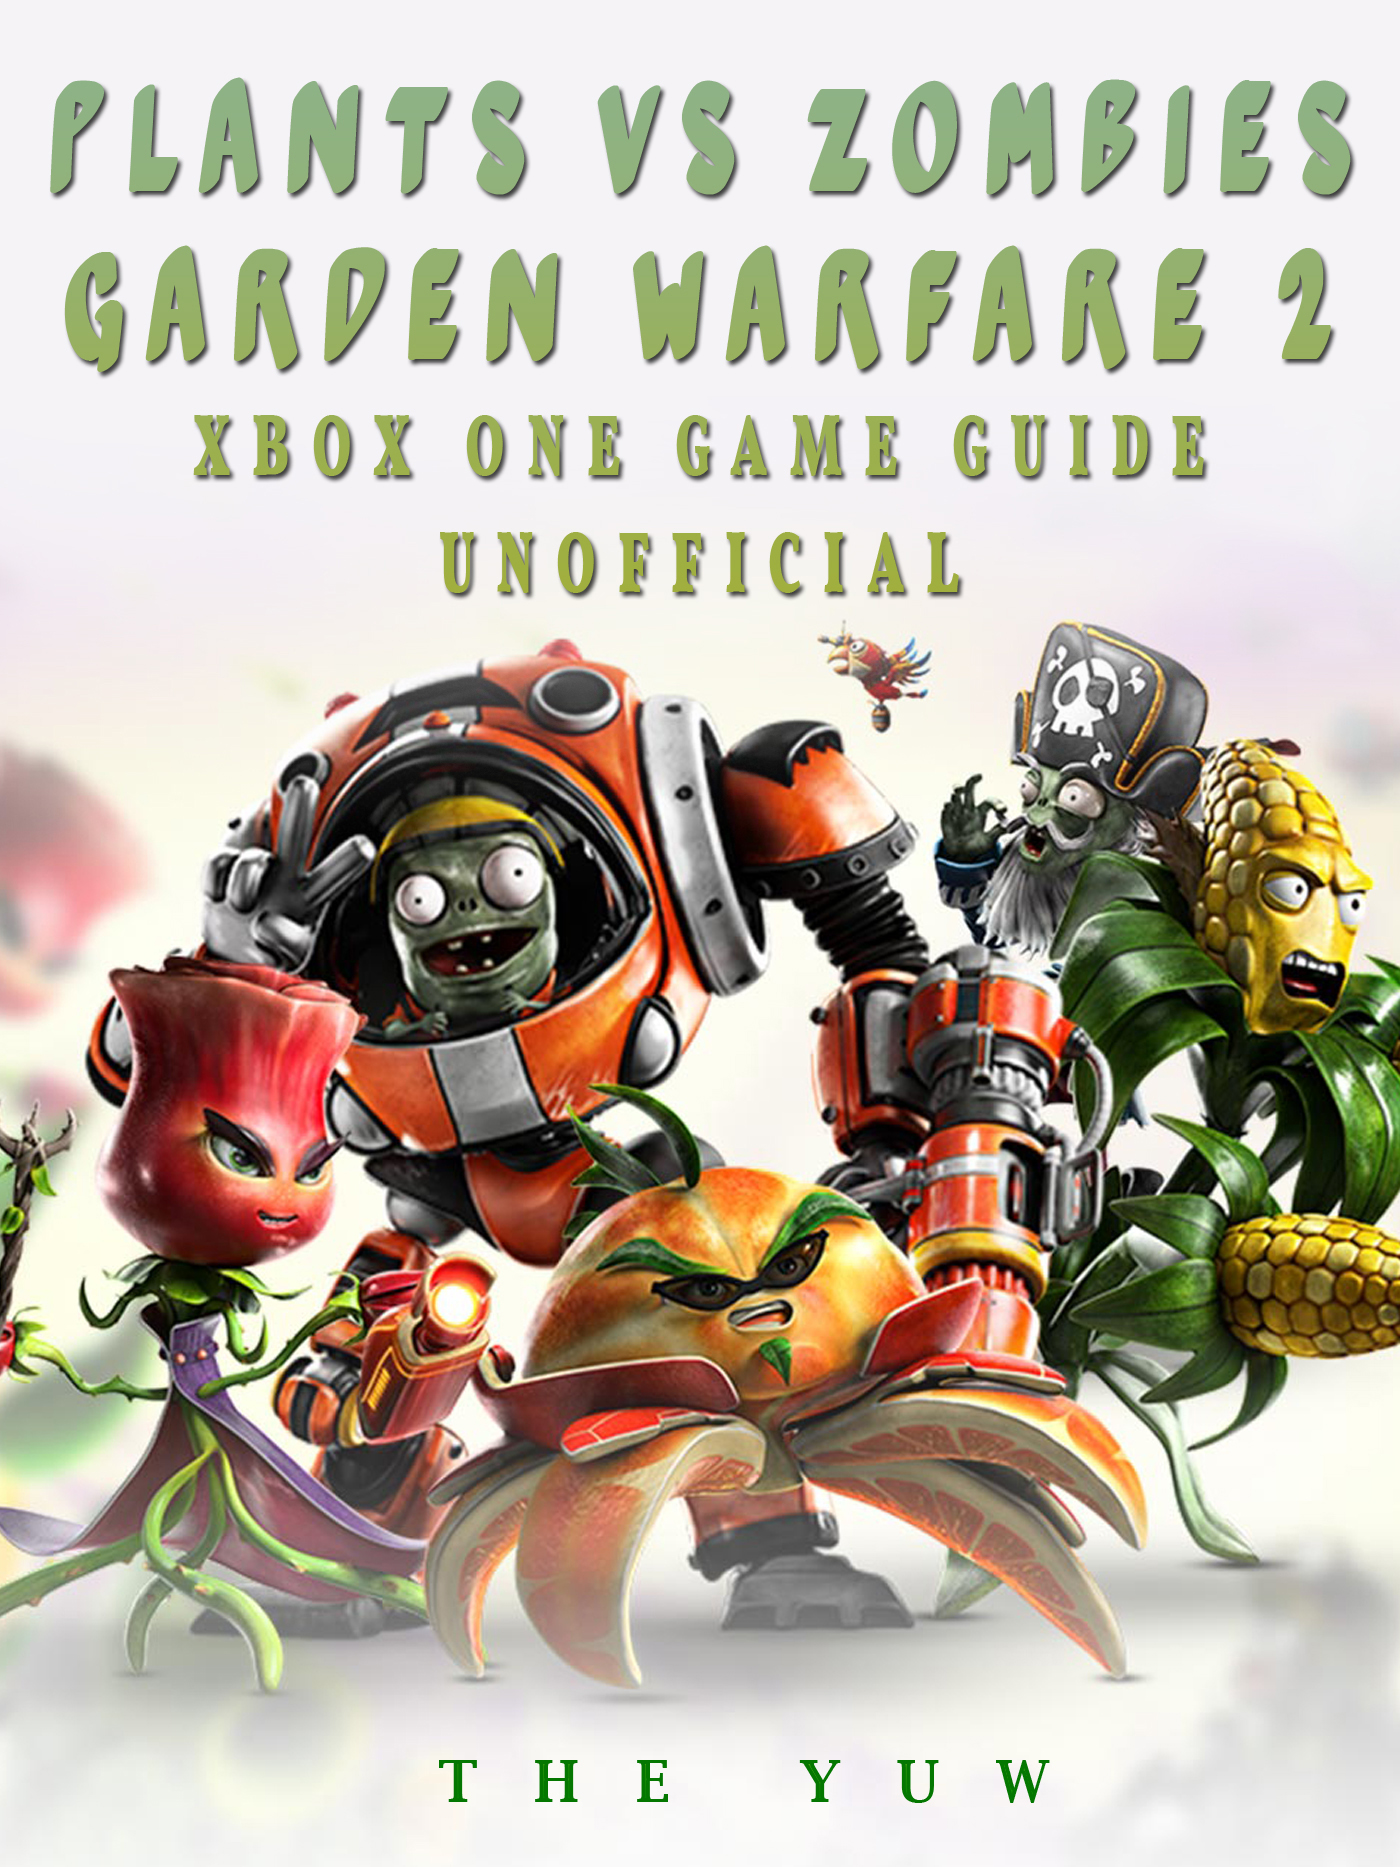 Plants Vs Zombies Garden Warfare 2 Xbox One Game Guide Unofficial